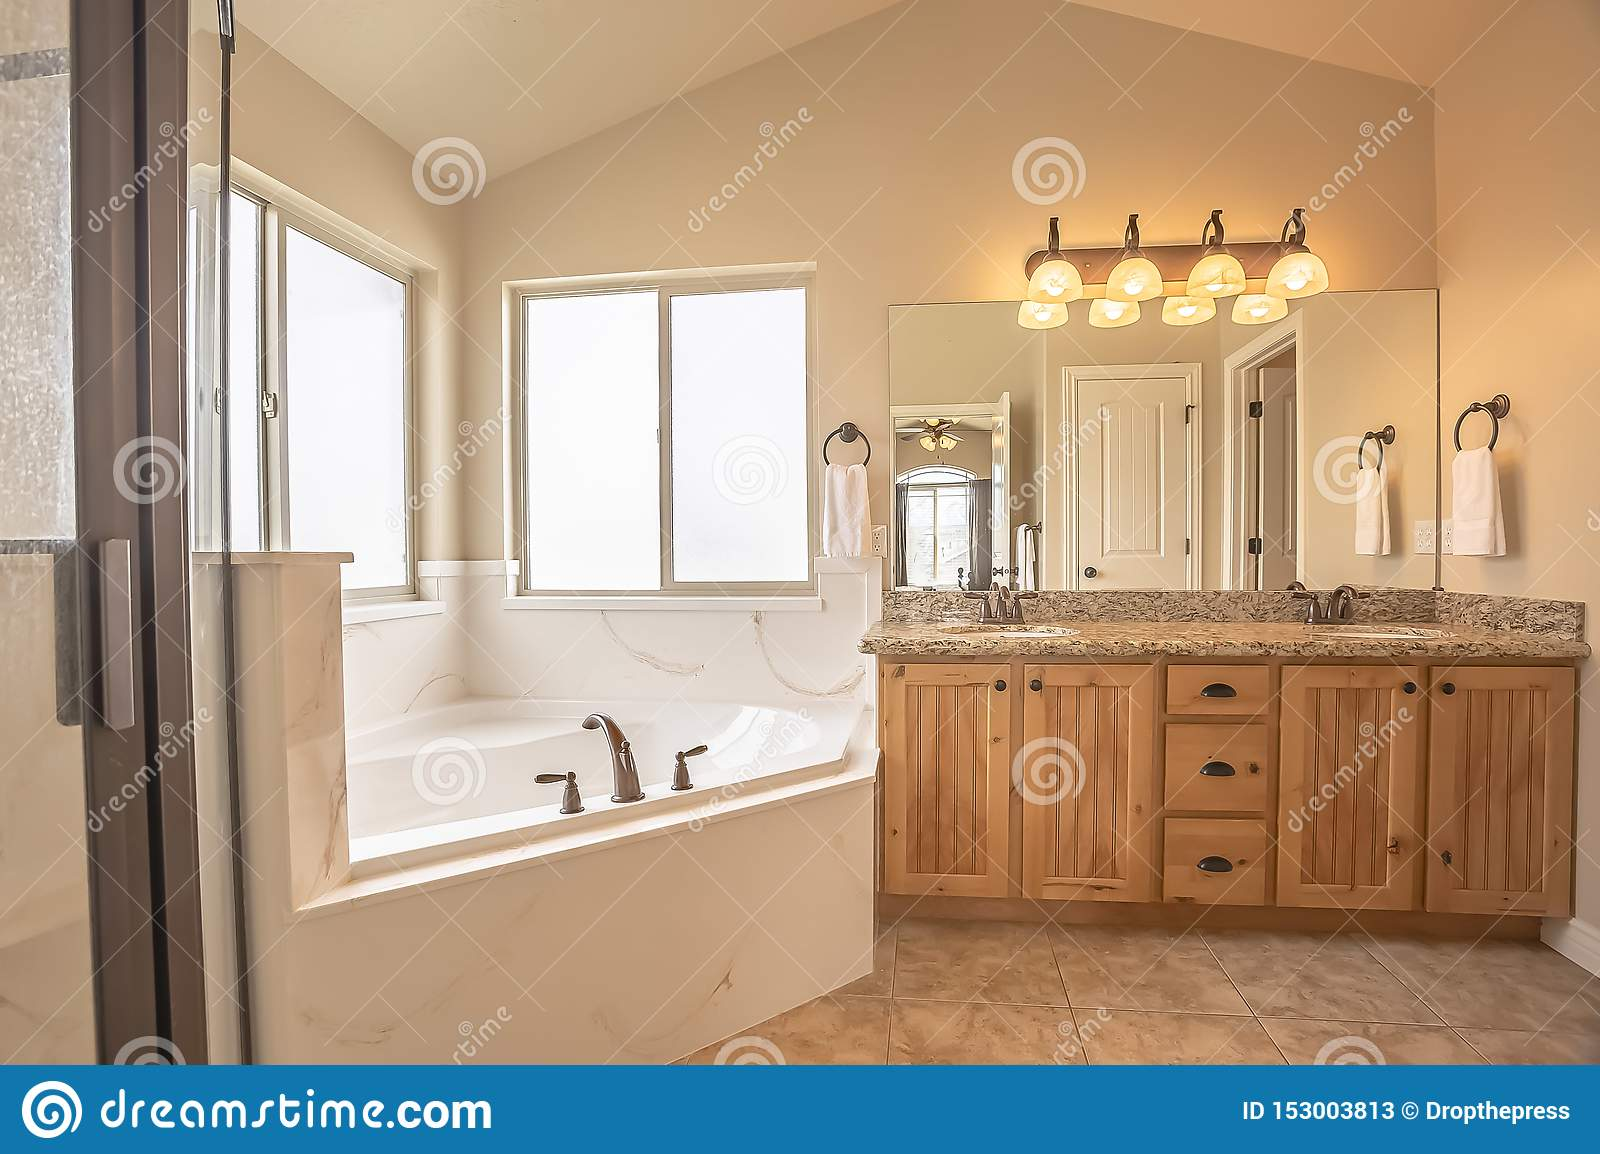 Built In Bathtub At The Corner Of A Home Bathroom With Tile Floor And Beige Wall Stock Image Image Of Interior Room 153003813